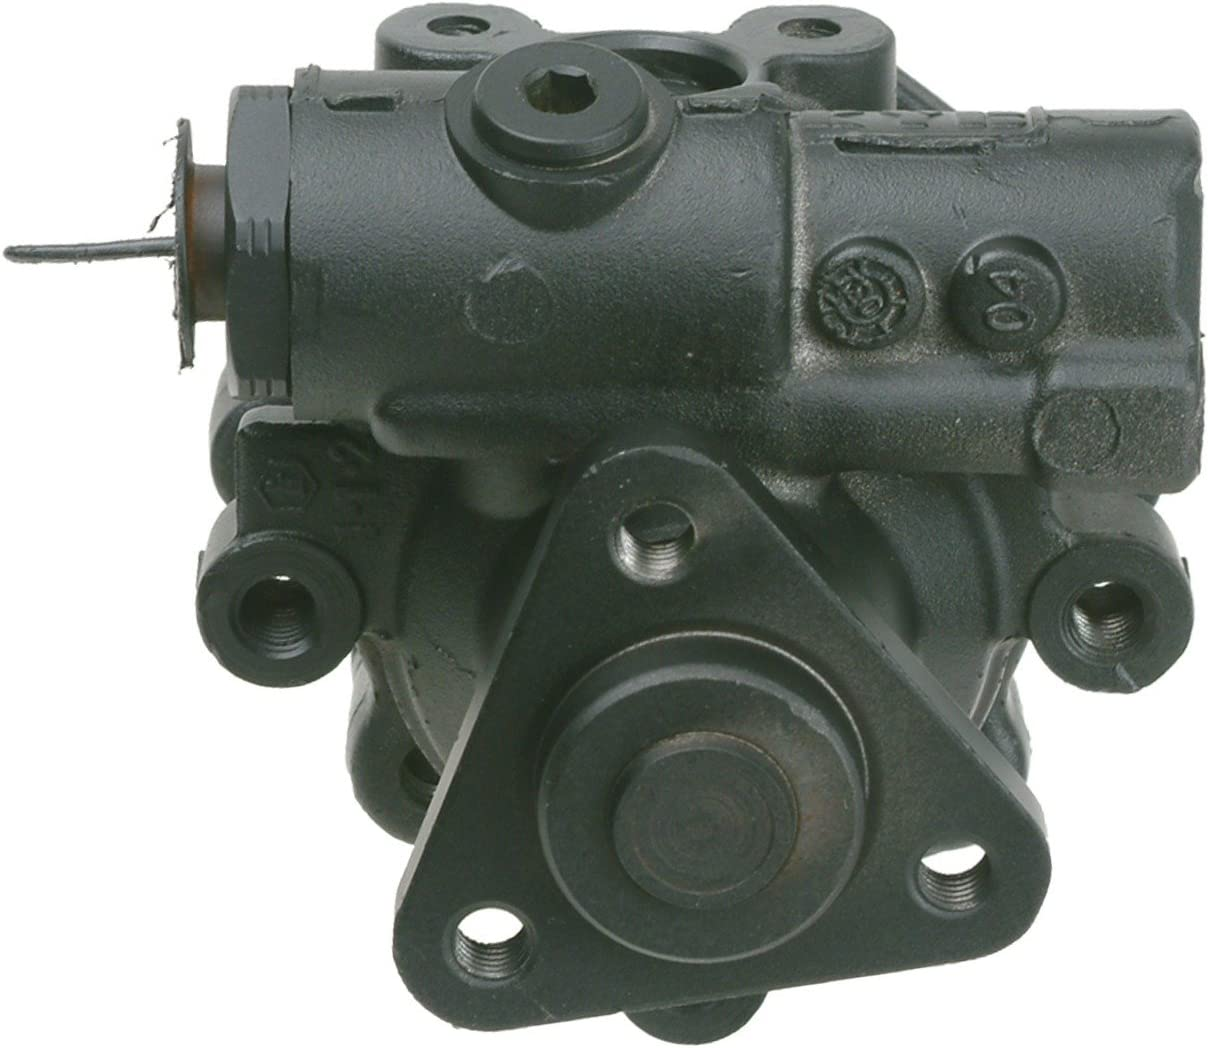 Cardone 21-5389 Remanufactured Import Power Steering Pump A1 Cardone A1  21-5389